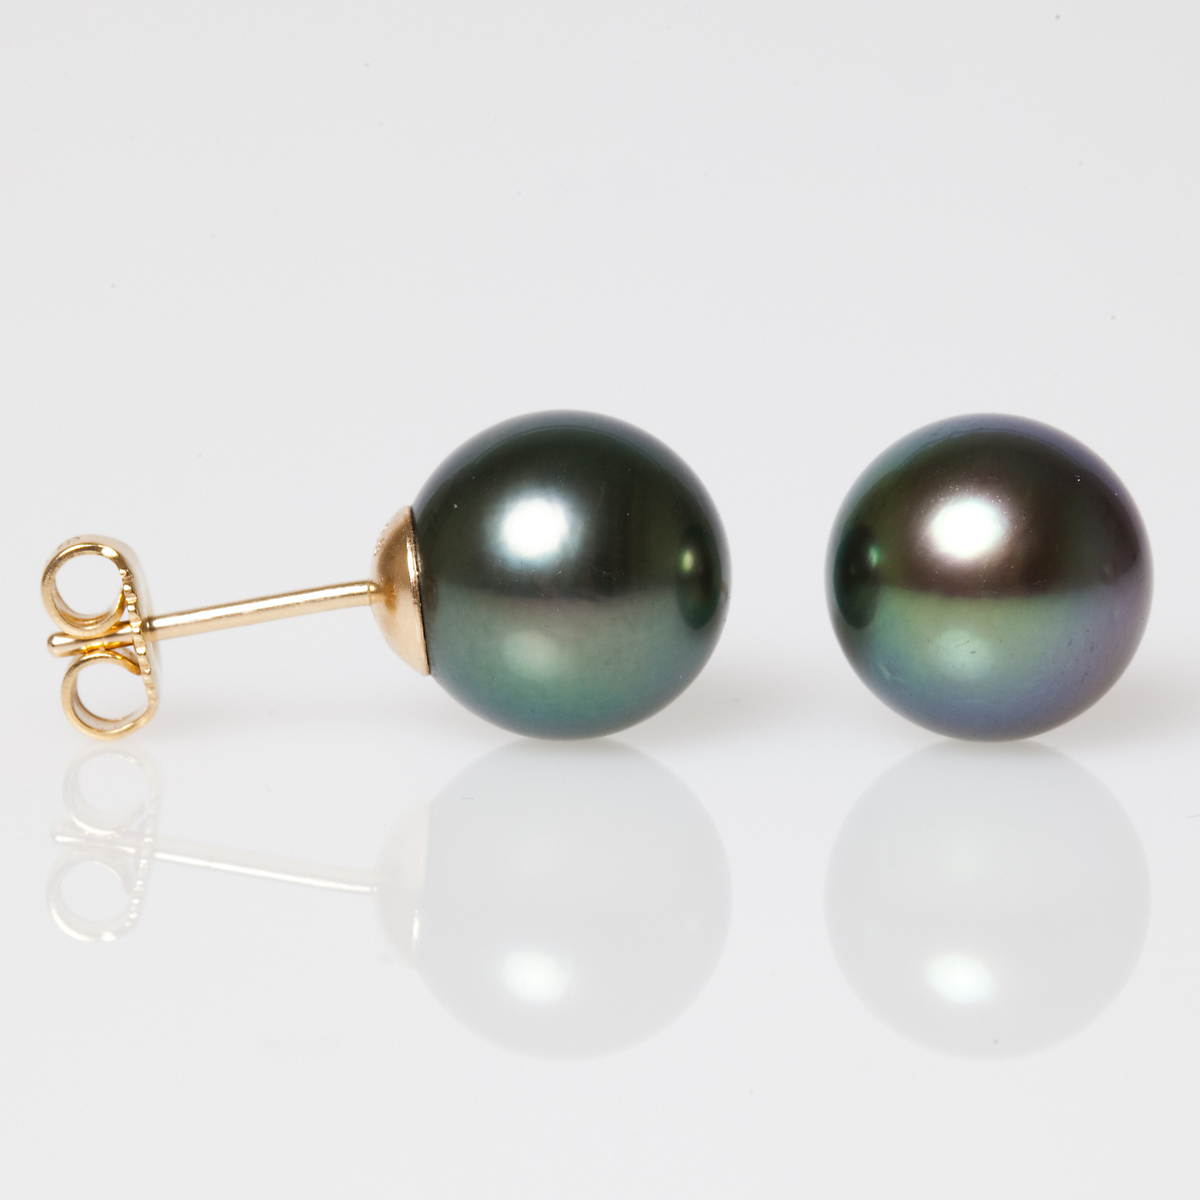 Gump's Black Tahitian Pearl Earrings